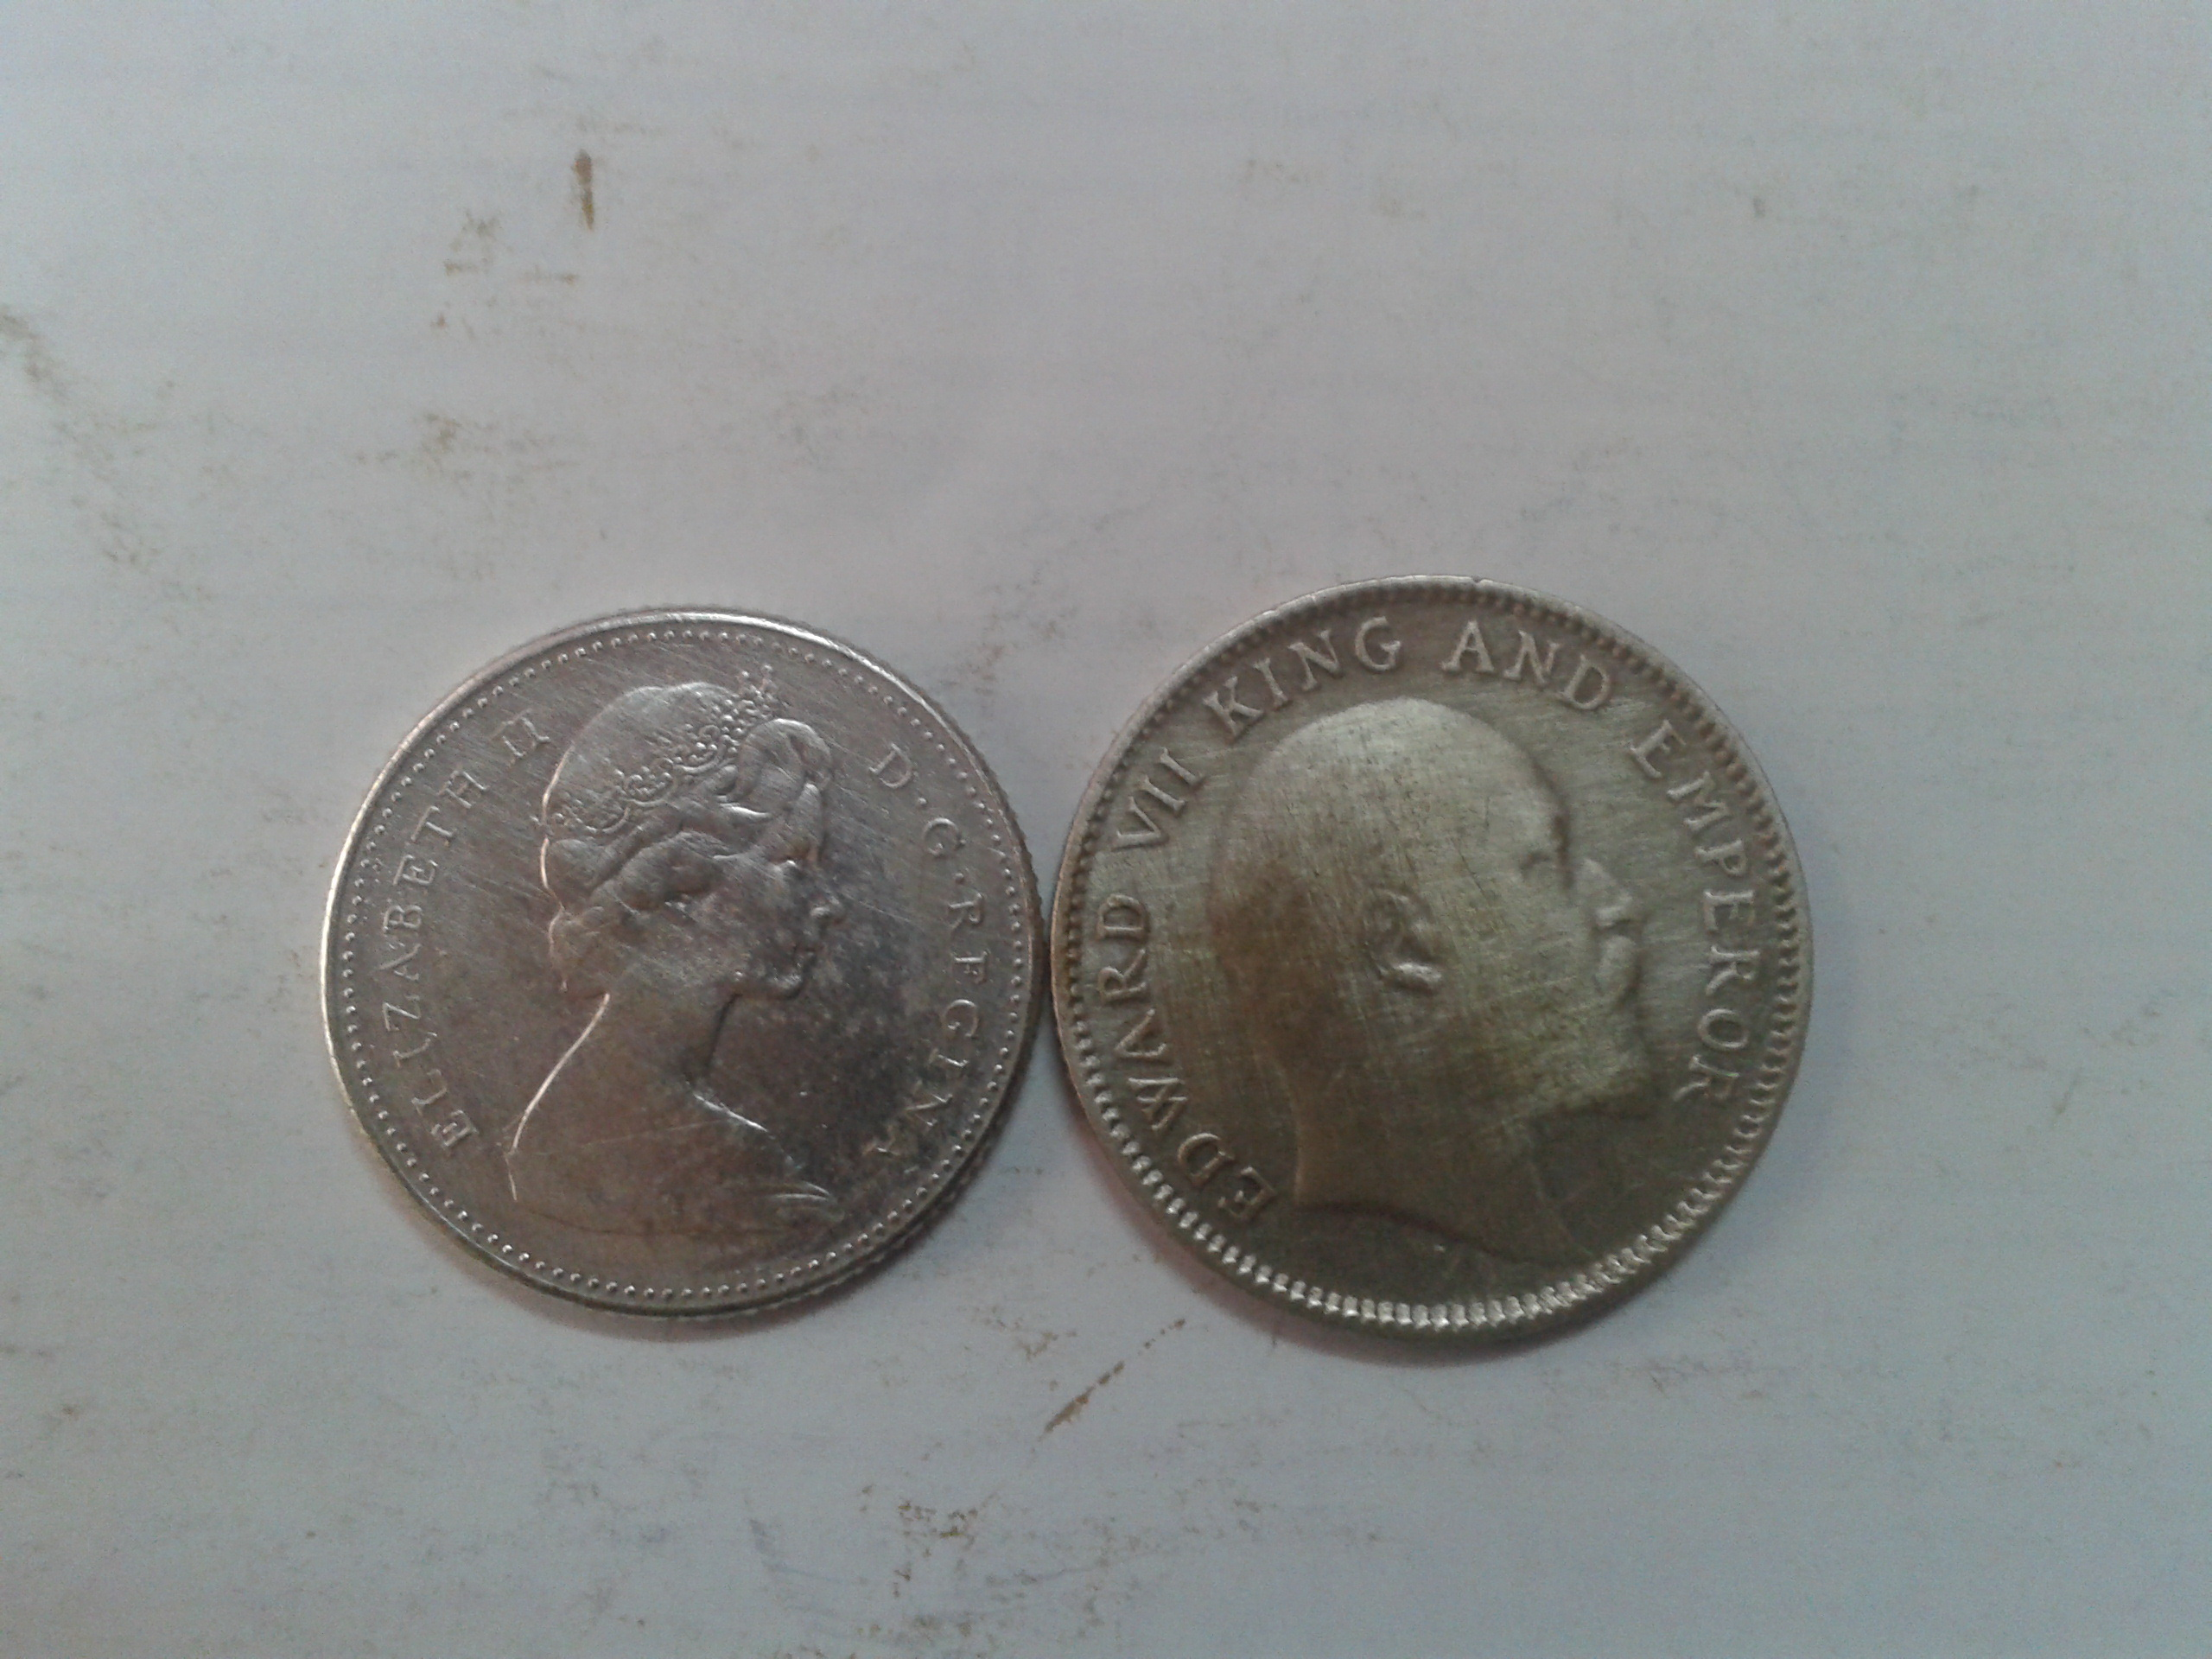 Unique Coin Old Coins Of India From The British And Portuguese Era